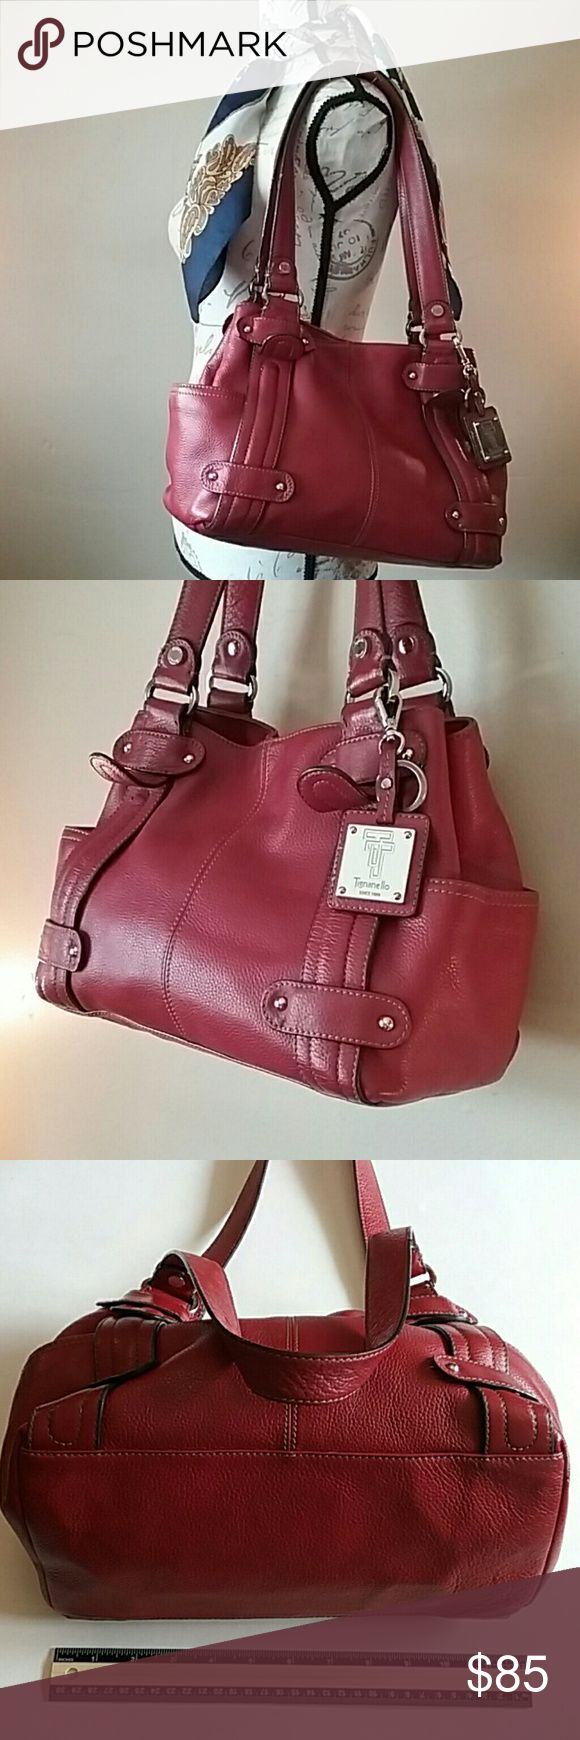 Huge tomato-red Tignanello leather bag. Like new! Love! A TON of bells and whistles, like the logo-engraved silver hardware, snaps on the huge side pockets, and magic magnetic closure on top.   Inside the gorgeous satin interior, you have two main compartments, with a zippered divider in the middle.  The first-rate logo tag also has a key chain.   BONUS  You get the pretty floral muslin tote as a dustbag. Tignanello Bags Satchels